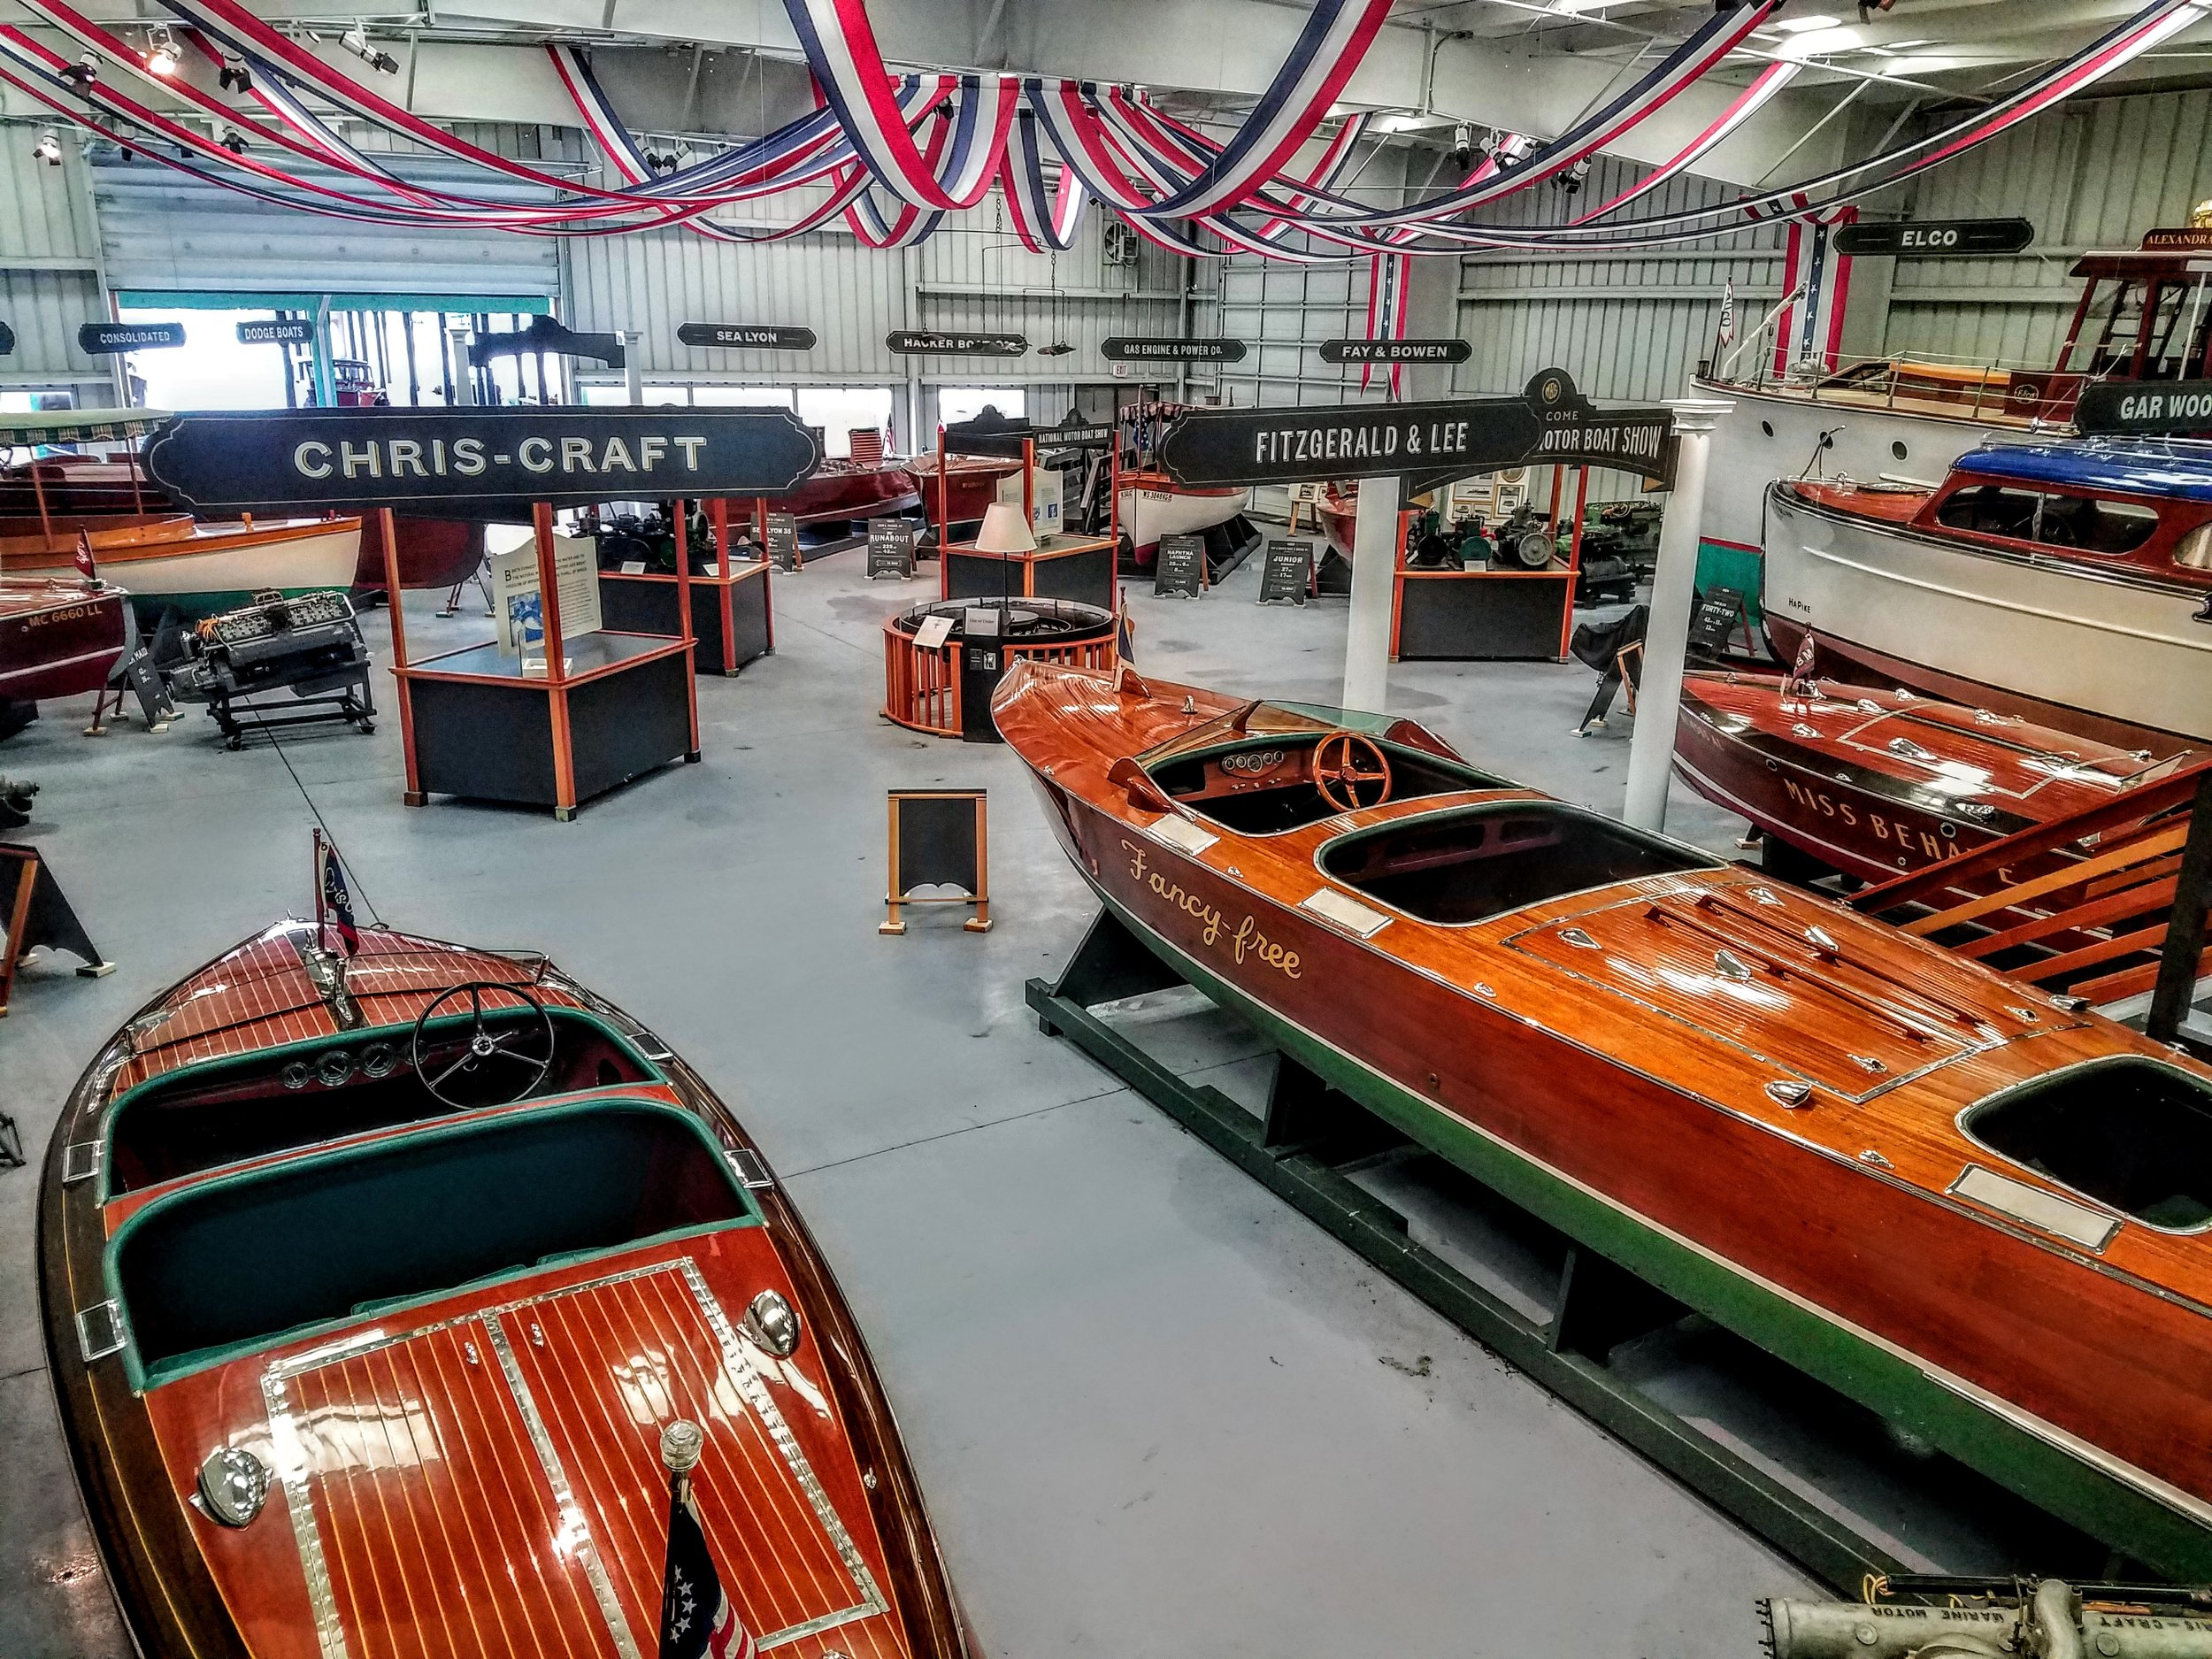 An amazing collection of vintage wooden boats